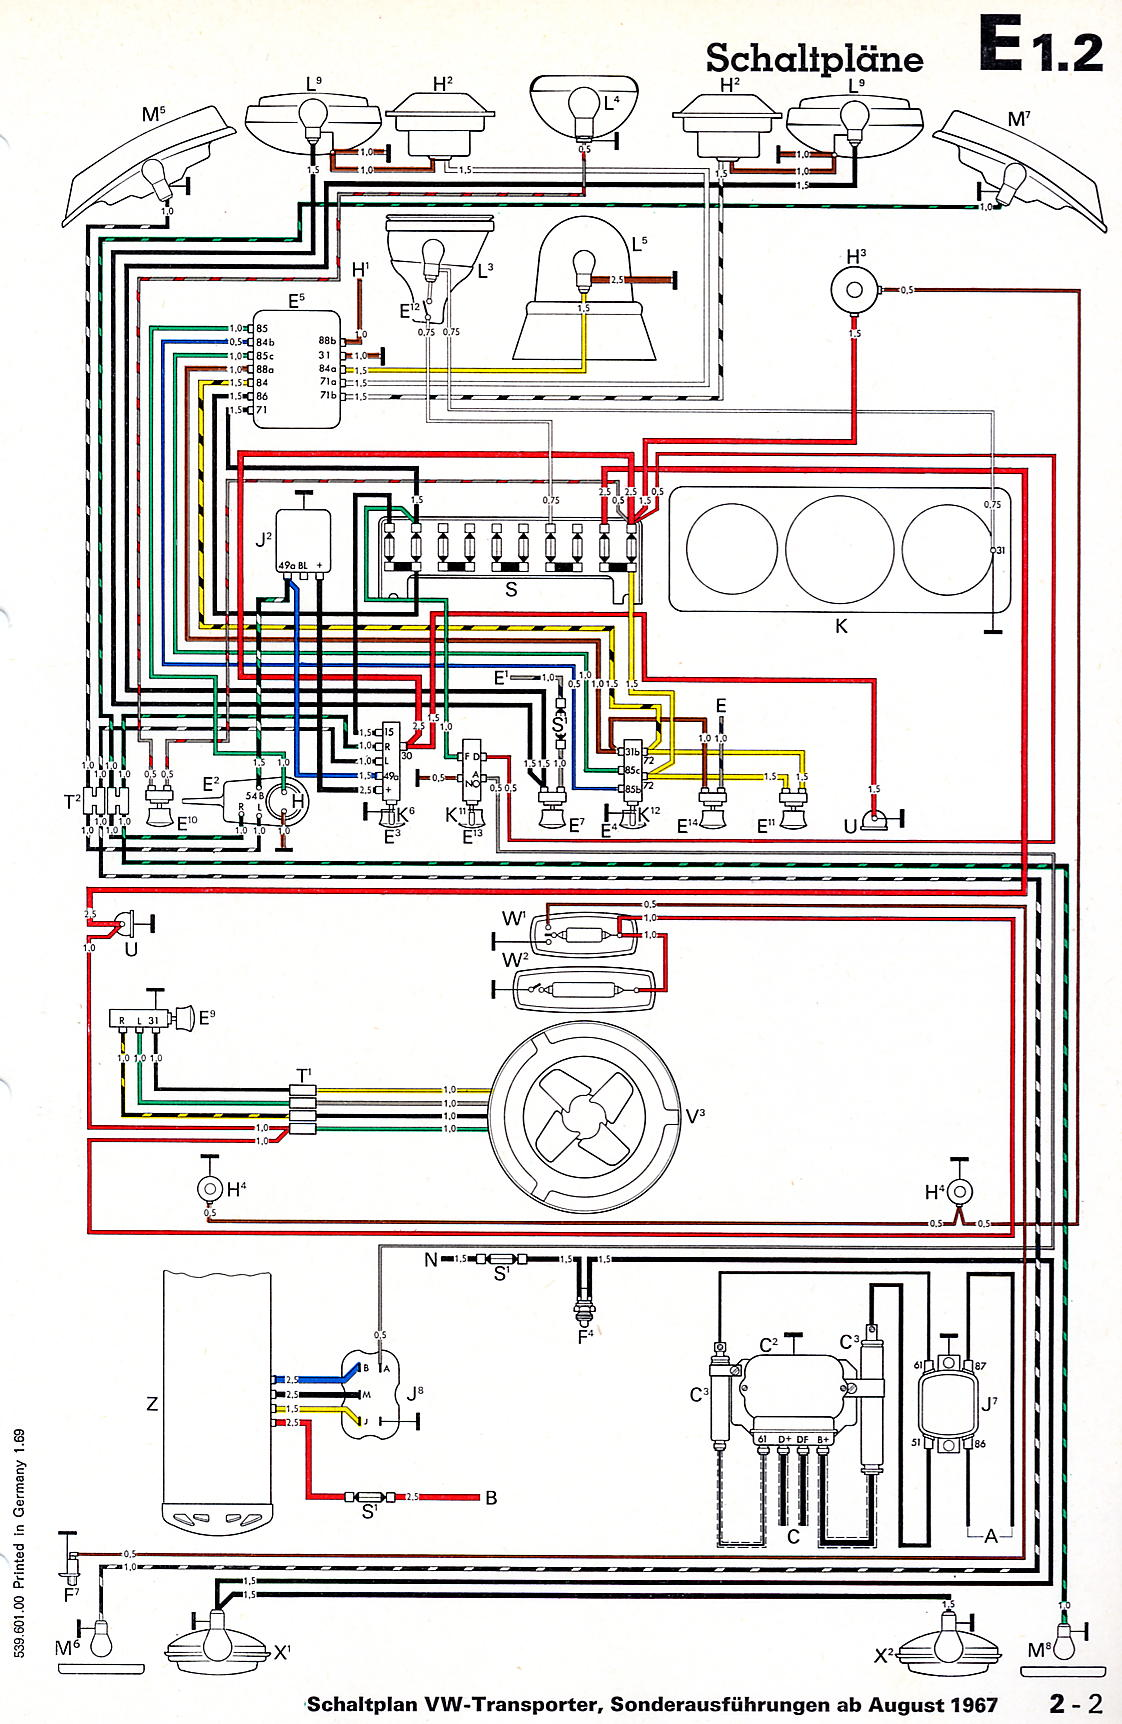 VintageBusCom VW Bus and other Wiring Diagrams